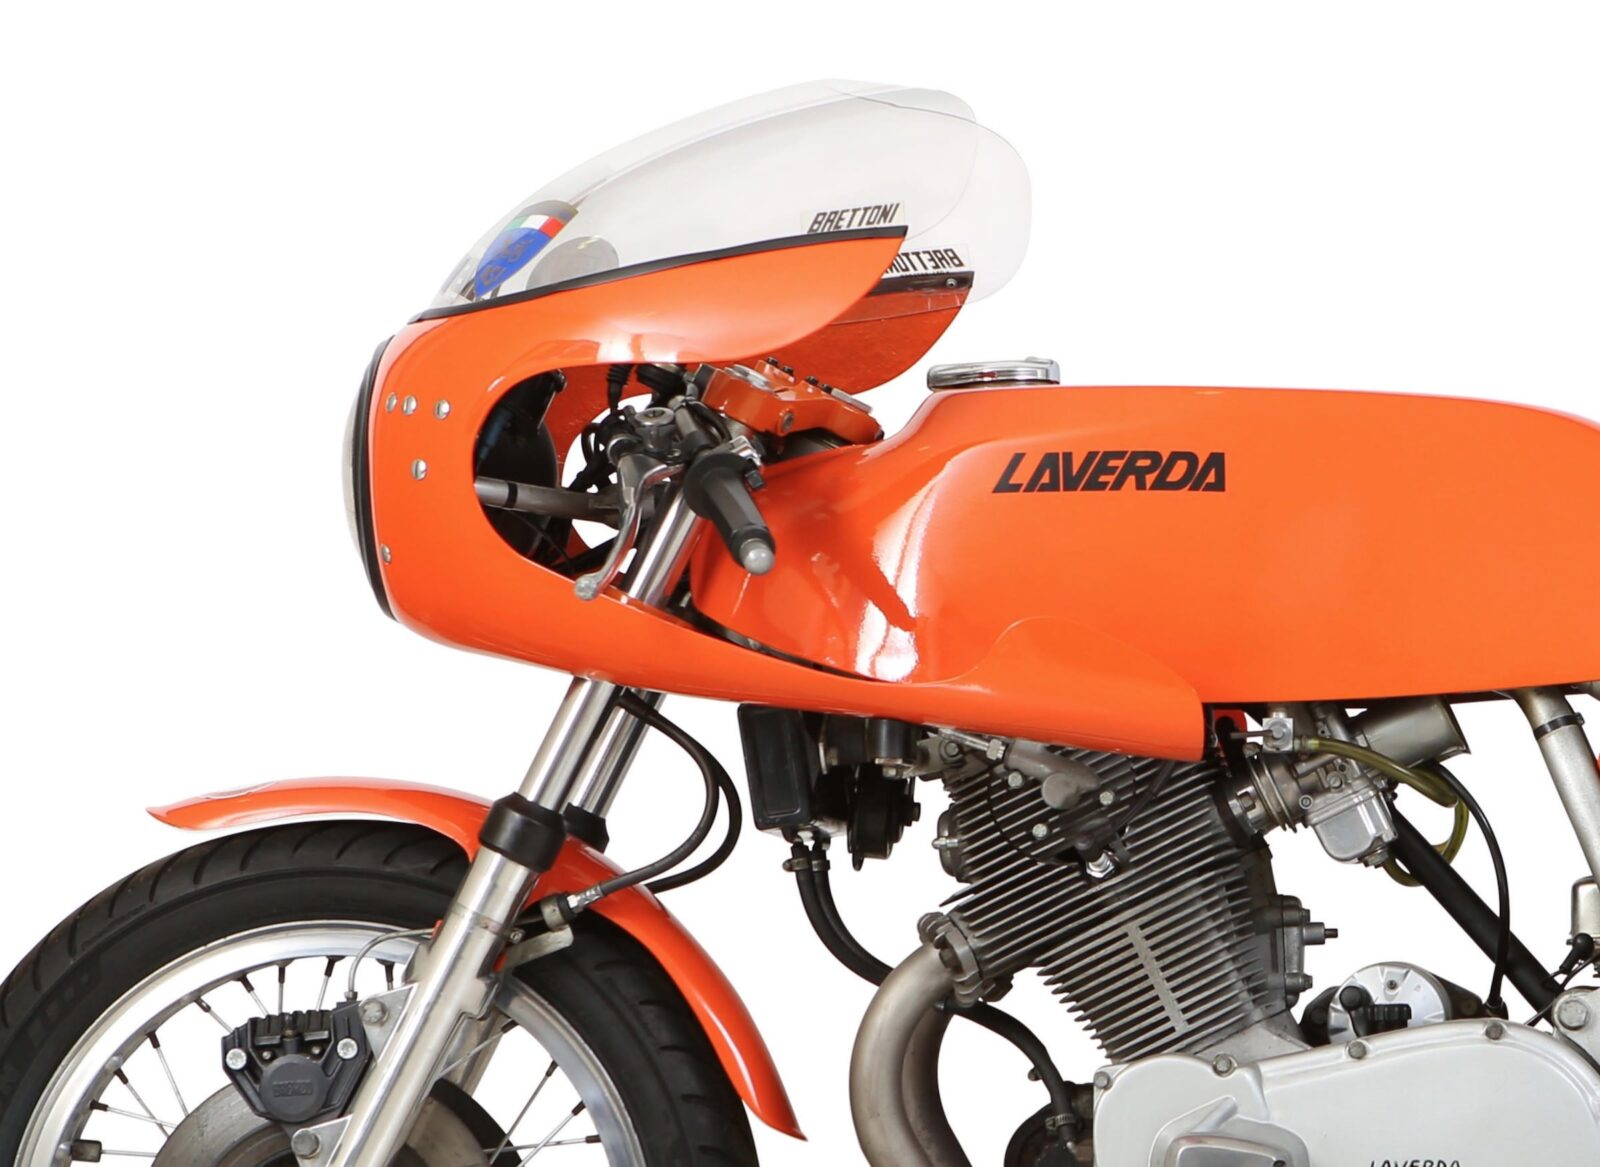 The Laverda 750 SFC Elettronica - An Endurance Racing Legend